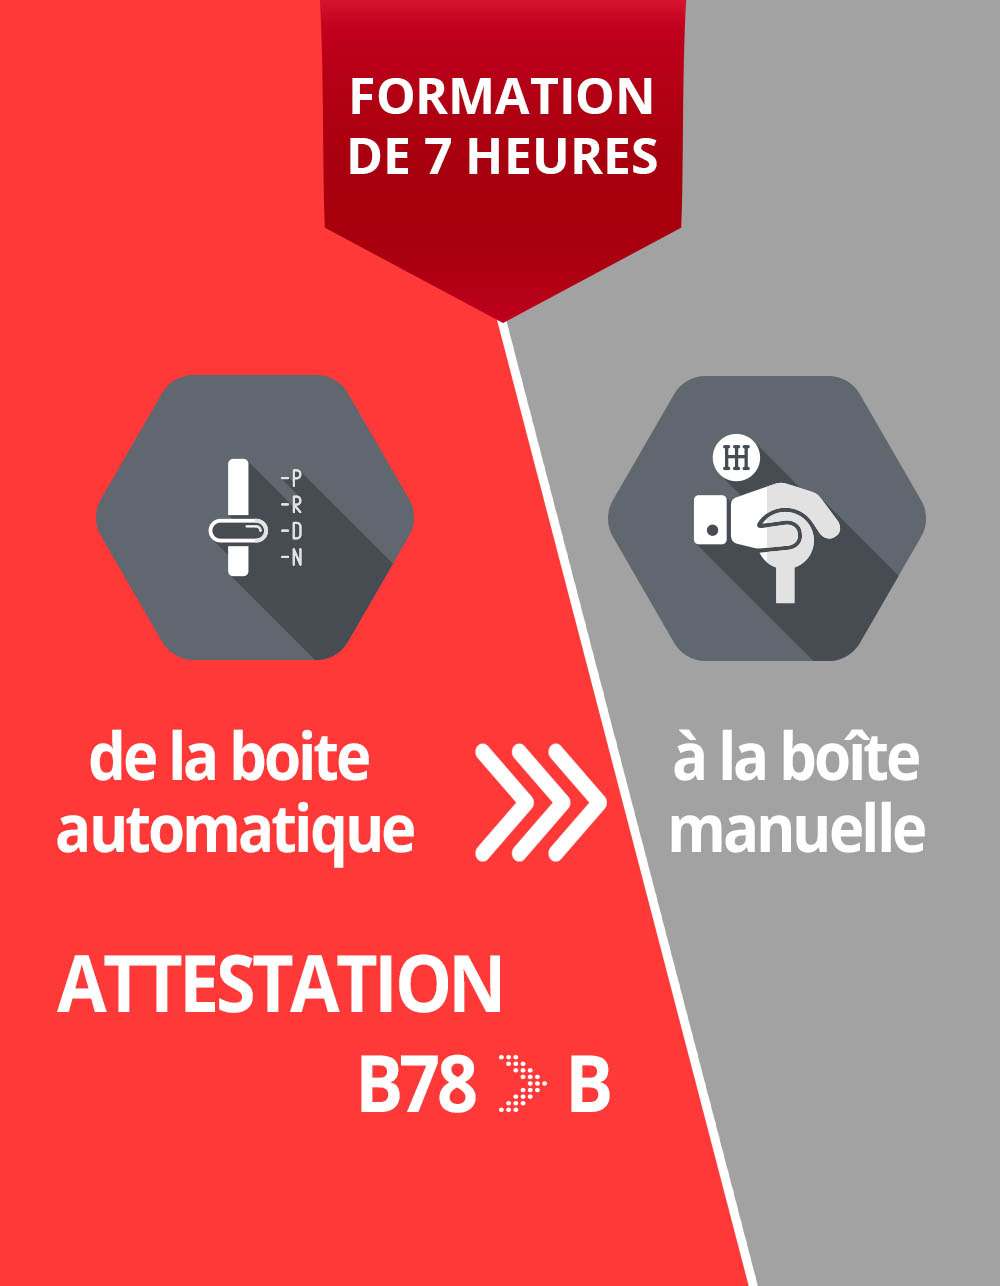 attestation_b_78_b